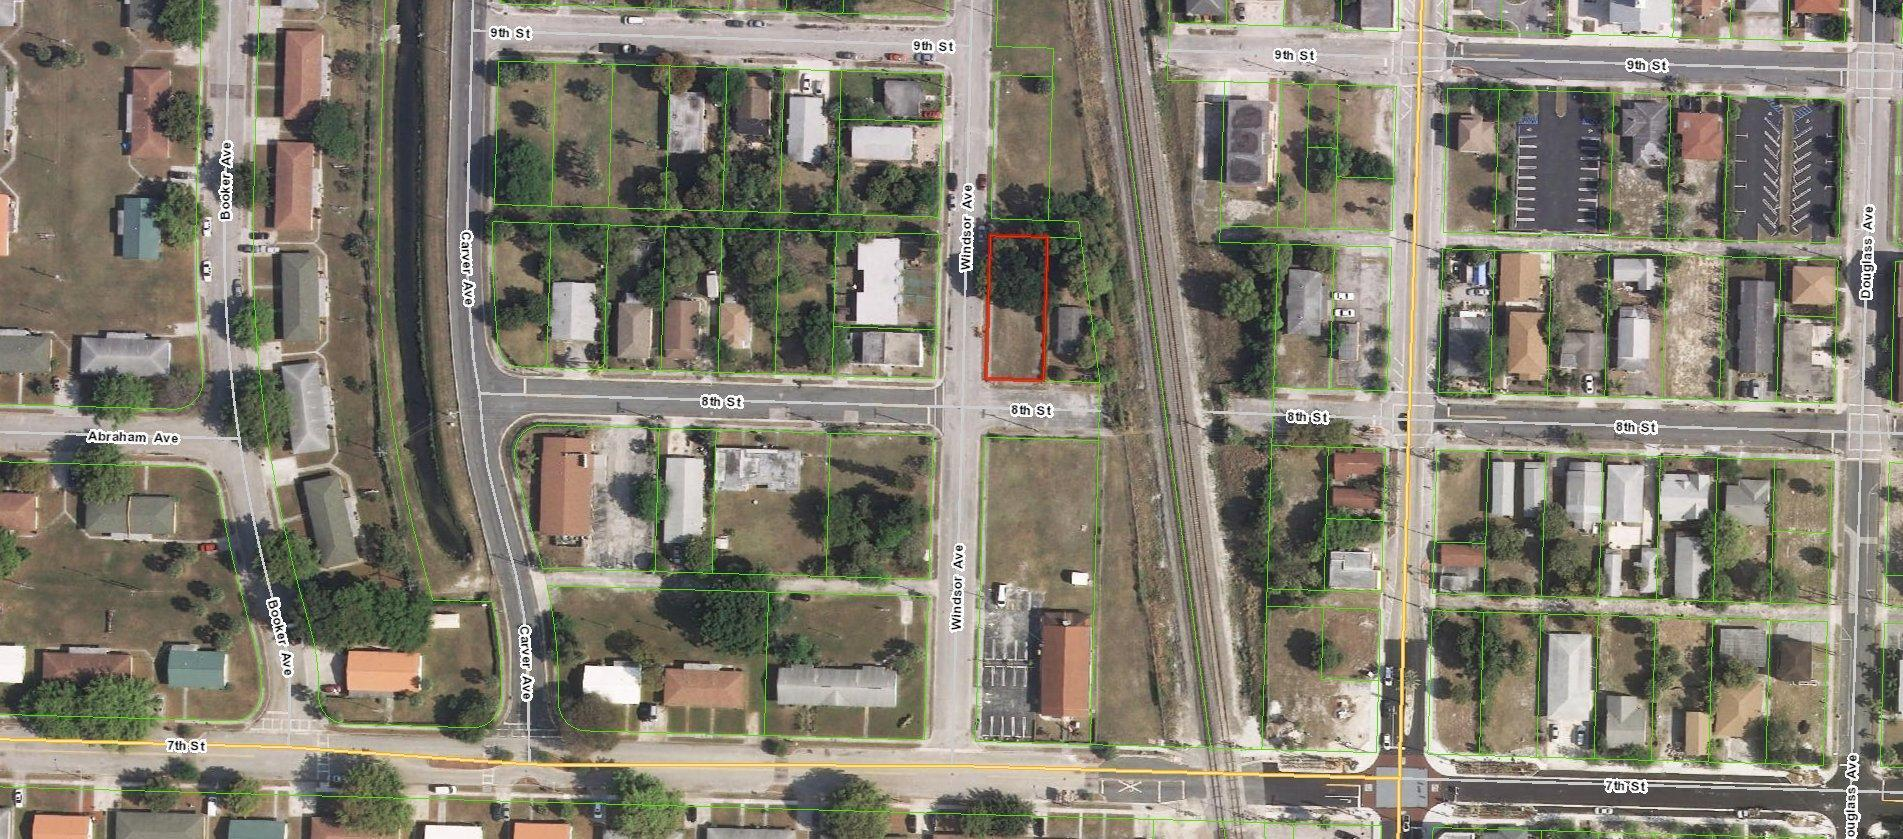 1027 8th Street, West Palm Beach, Florida 33401, ,Land,For Sale,8th,RX-10500021